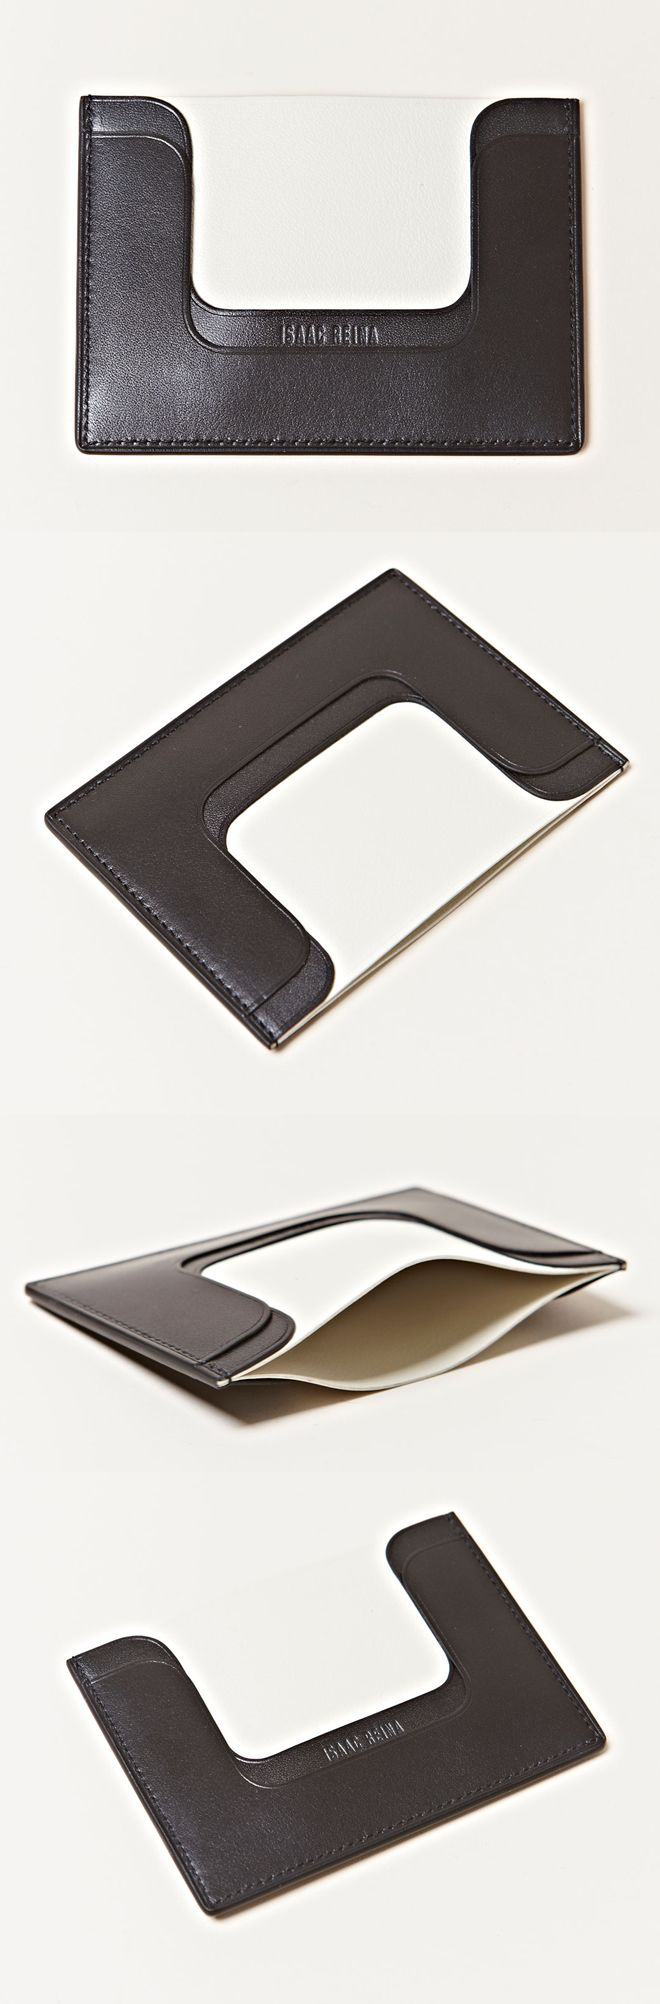 Isaac Reina 2012 Spring/Summer Enzo Mari 6 Card Holder (Swell Bottle Strap)